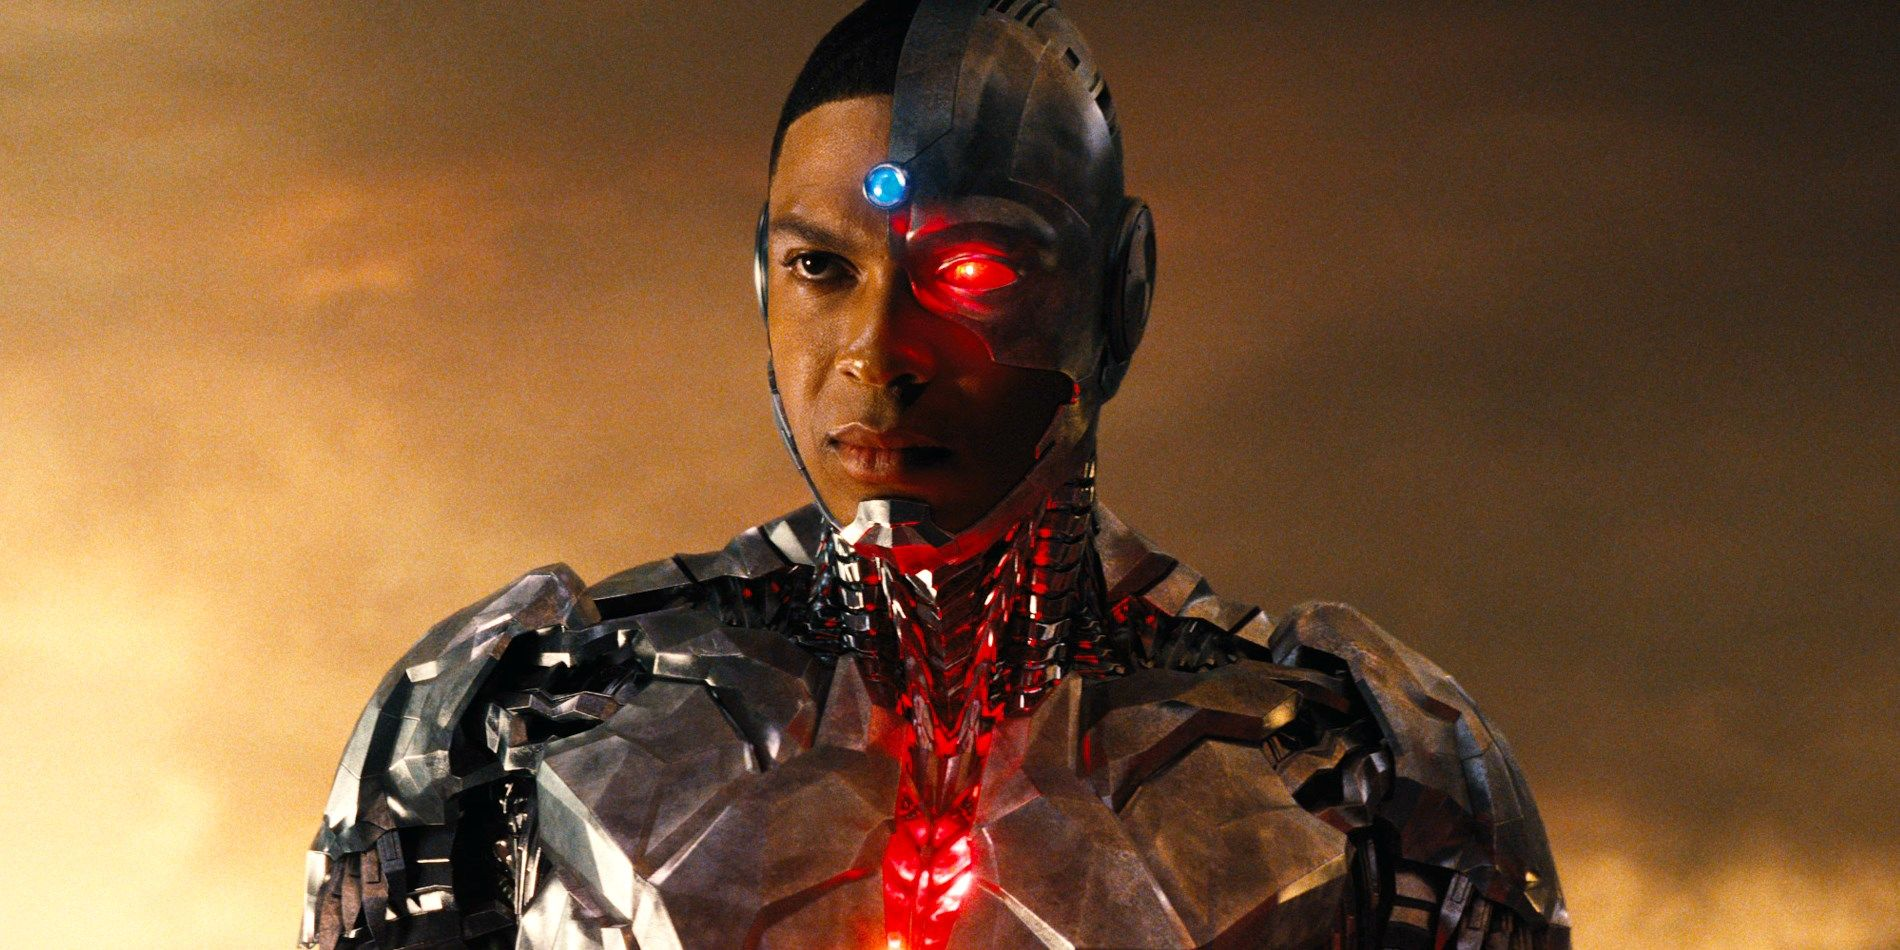 Cyborg Actor Ray Fisher Is Emotional About Snyder's Justice League